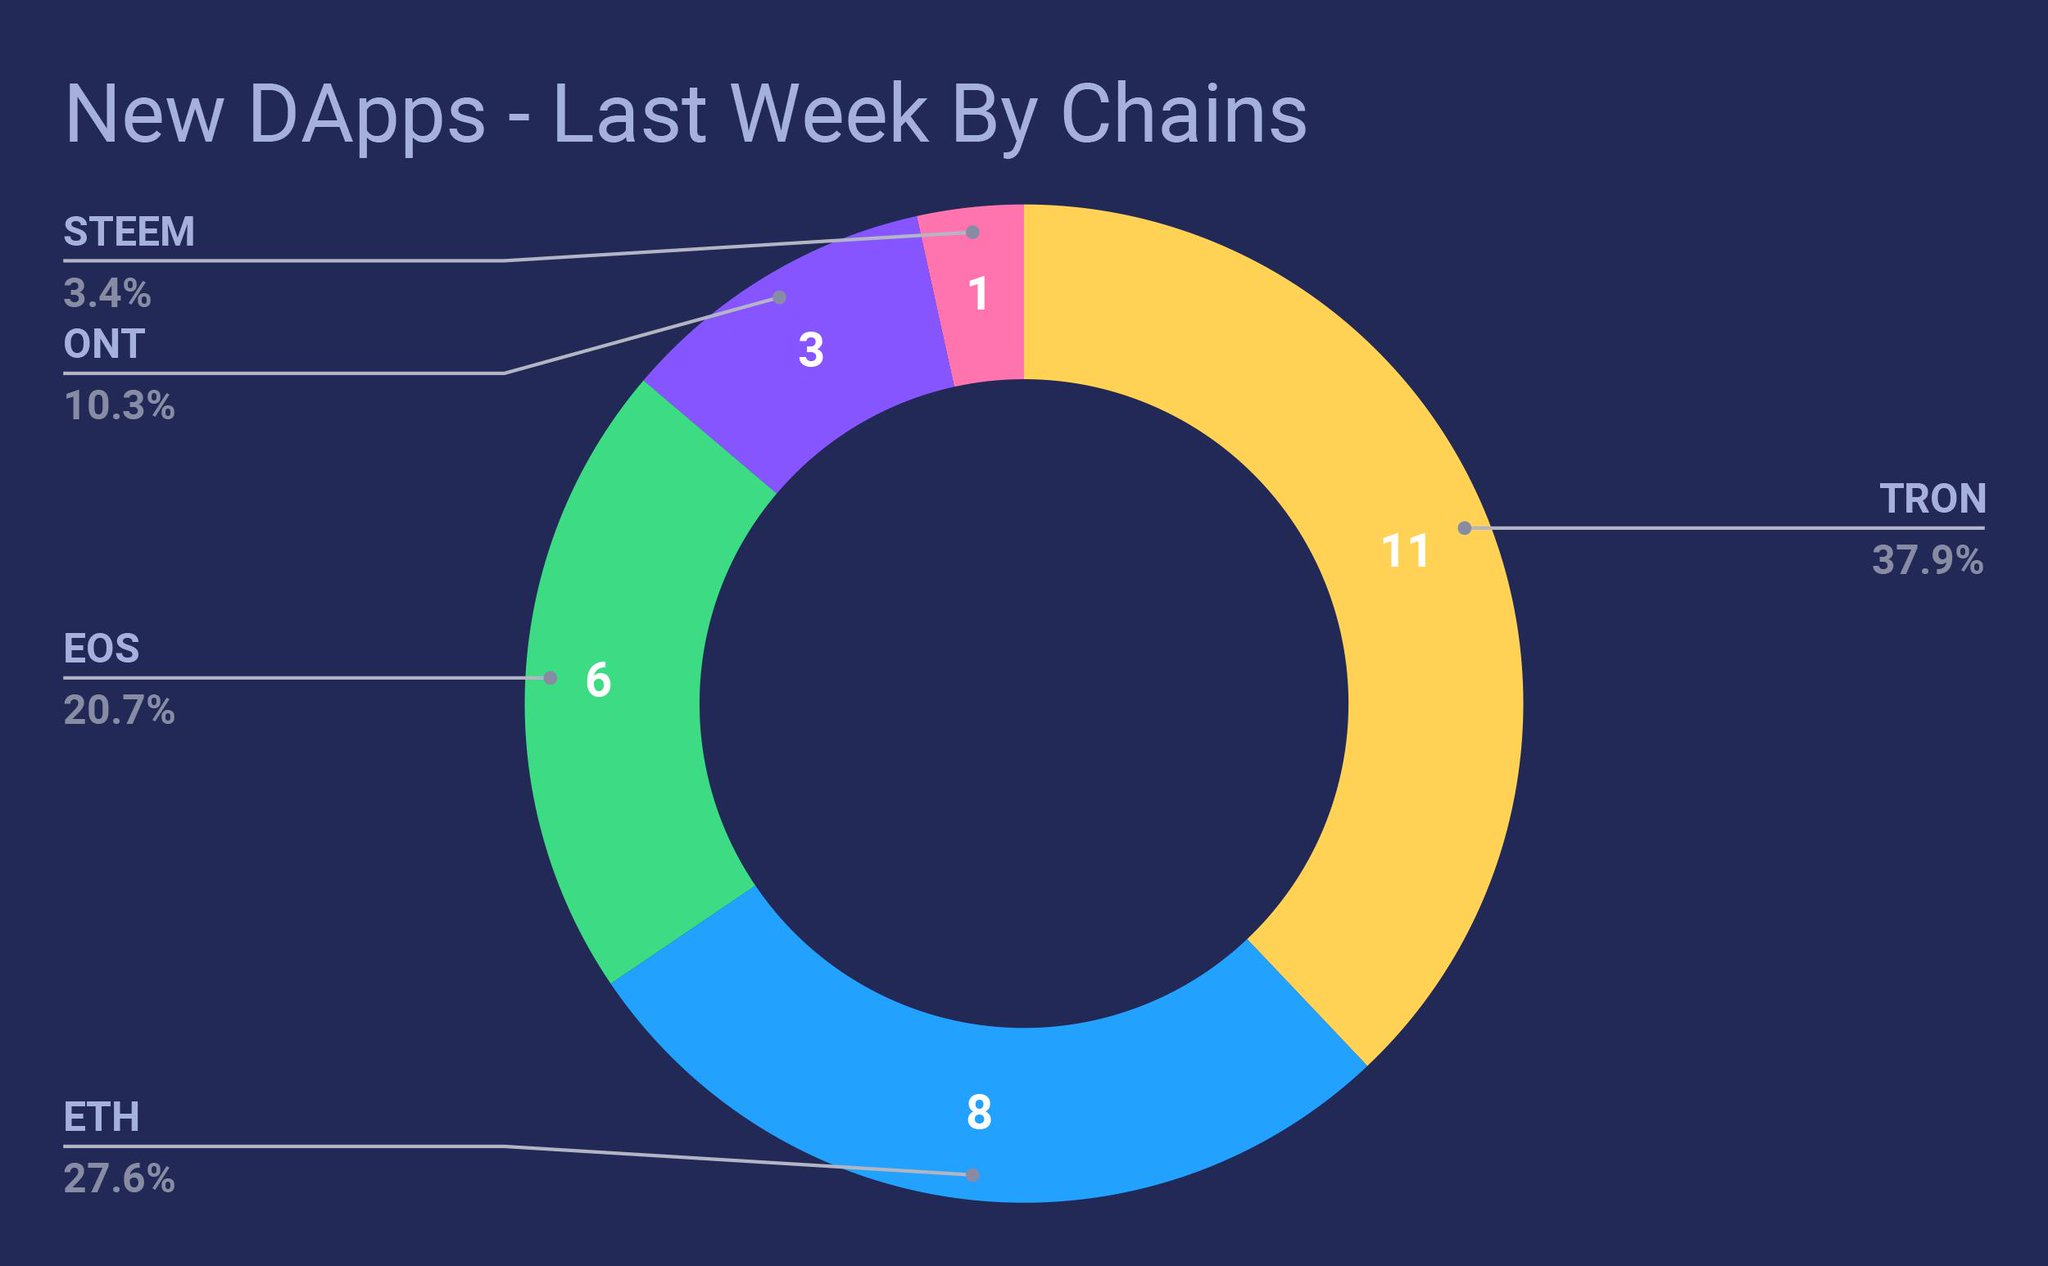 #DApp Performance In Last Week Part2  We added 29 new DApps on our site last week.  -By Chains: #TRON 11; #ETH 8; #EOS 6; #ONT 3; #STEEM 1  -By Category: #Casino 13; #Game 6; #Other 5; #HighRisk 4; #Social 1  #IAmDecentralized #Blockchain https://t.co/xxLkTeq9II